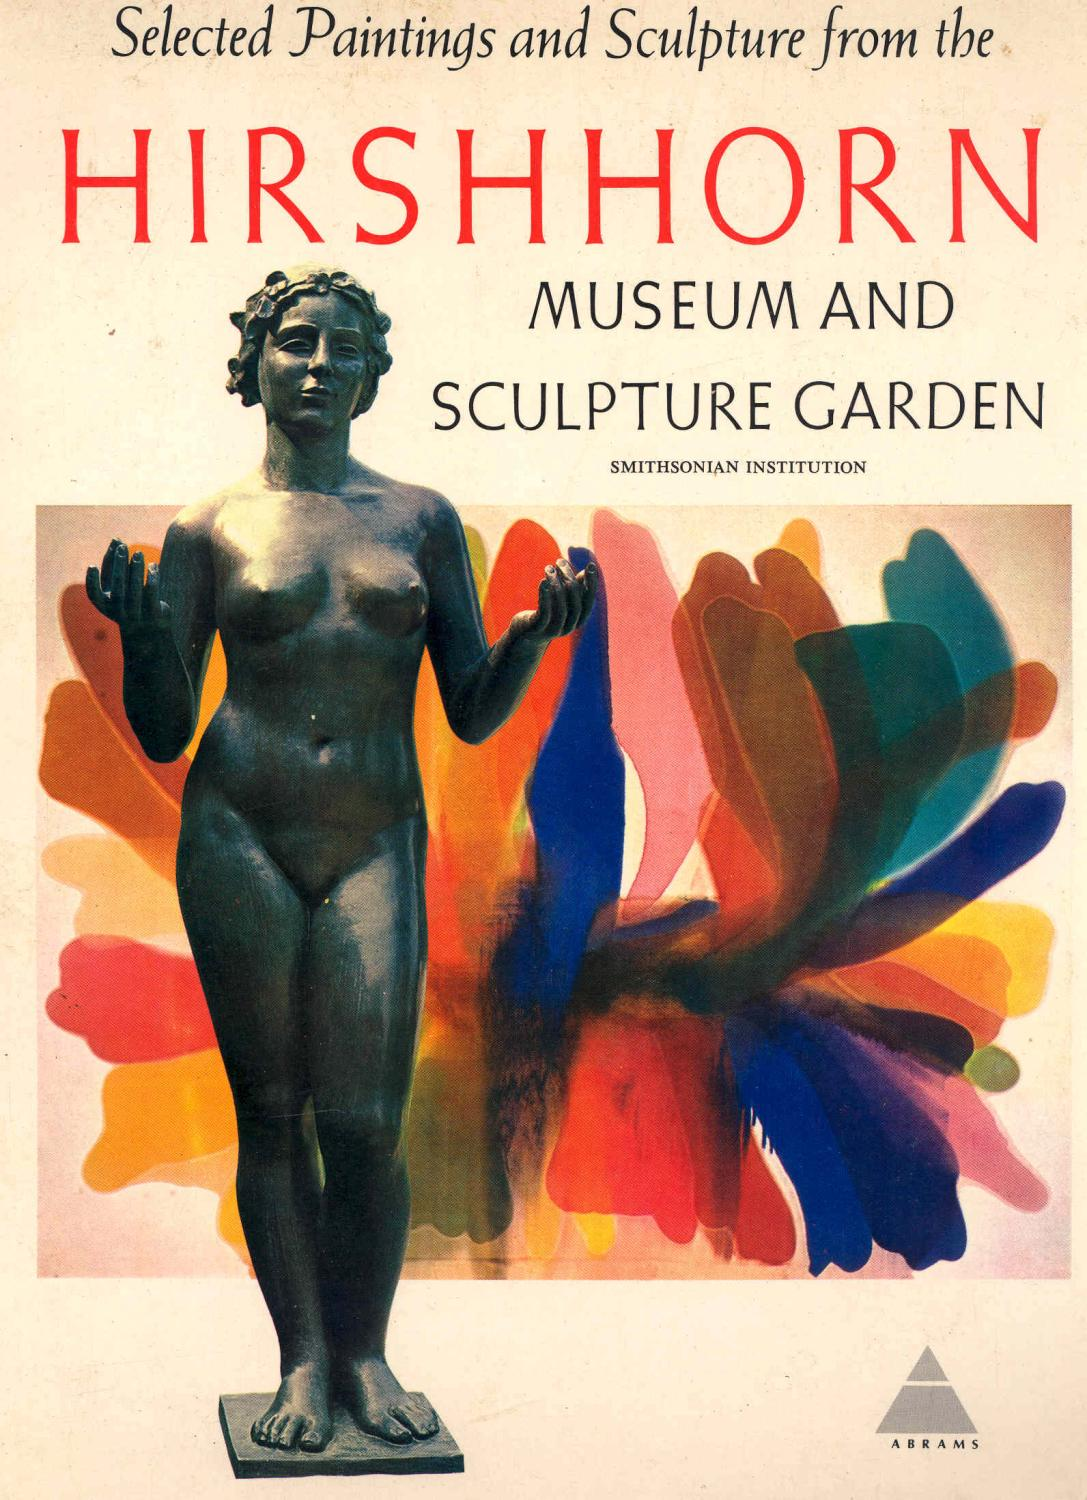 The Hirshhorn Museum & Sculpture Garden, Smithsonian Institution : Selected Paintings and Sculpture from the Hirschorn Museum and Sculpture Garden. [French Nineteenth-Century Sculpture and American Art - Lerner, Abram ; Nochlin, Linda, 1931- ; Hirshhorn Museum and Sculpture Garden ; Smithsonian Institution. ; Foreword by S. Dillon Ripley. ; Nai Y Chang, John L Hochmann, Margaret L Kaplan, Ellen Schultz, Barbara Lyons, Dirk J van O Luykx, Alfred Frankenste